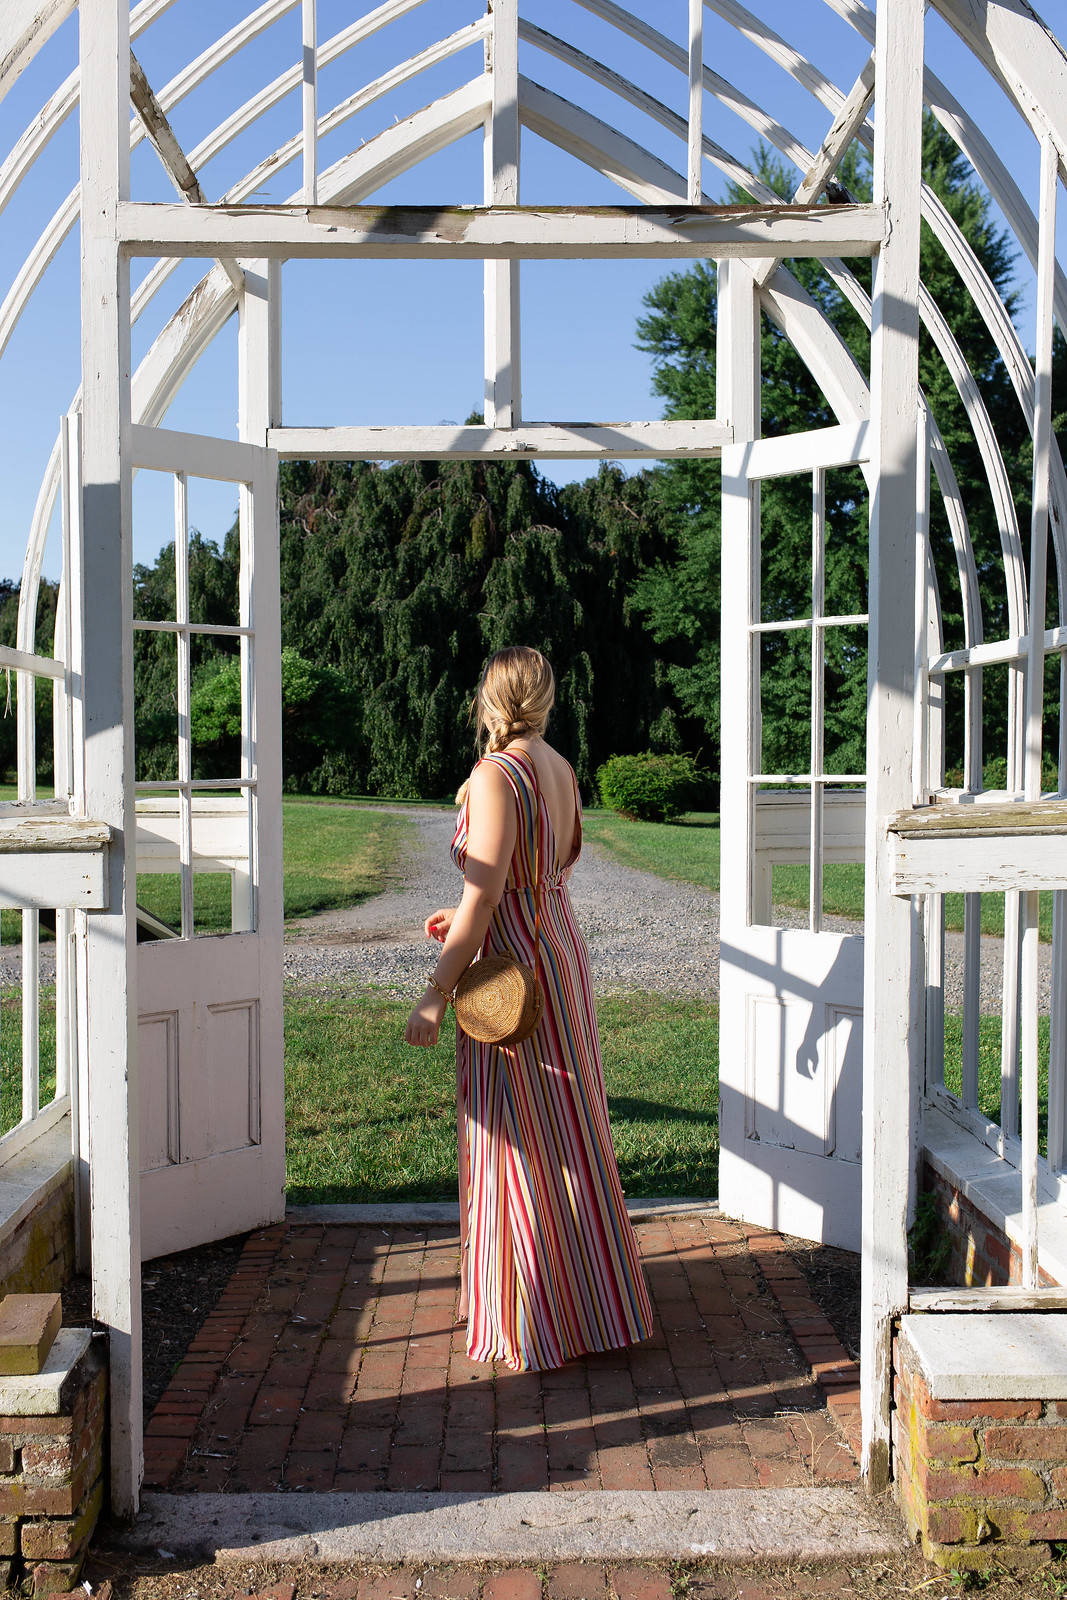 Lyndhurst Mansion Greenhouse Tarrytown Most Instagrammable Places in Westchester County New York